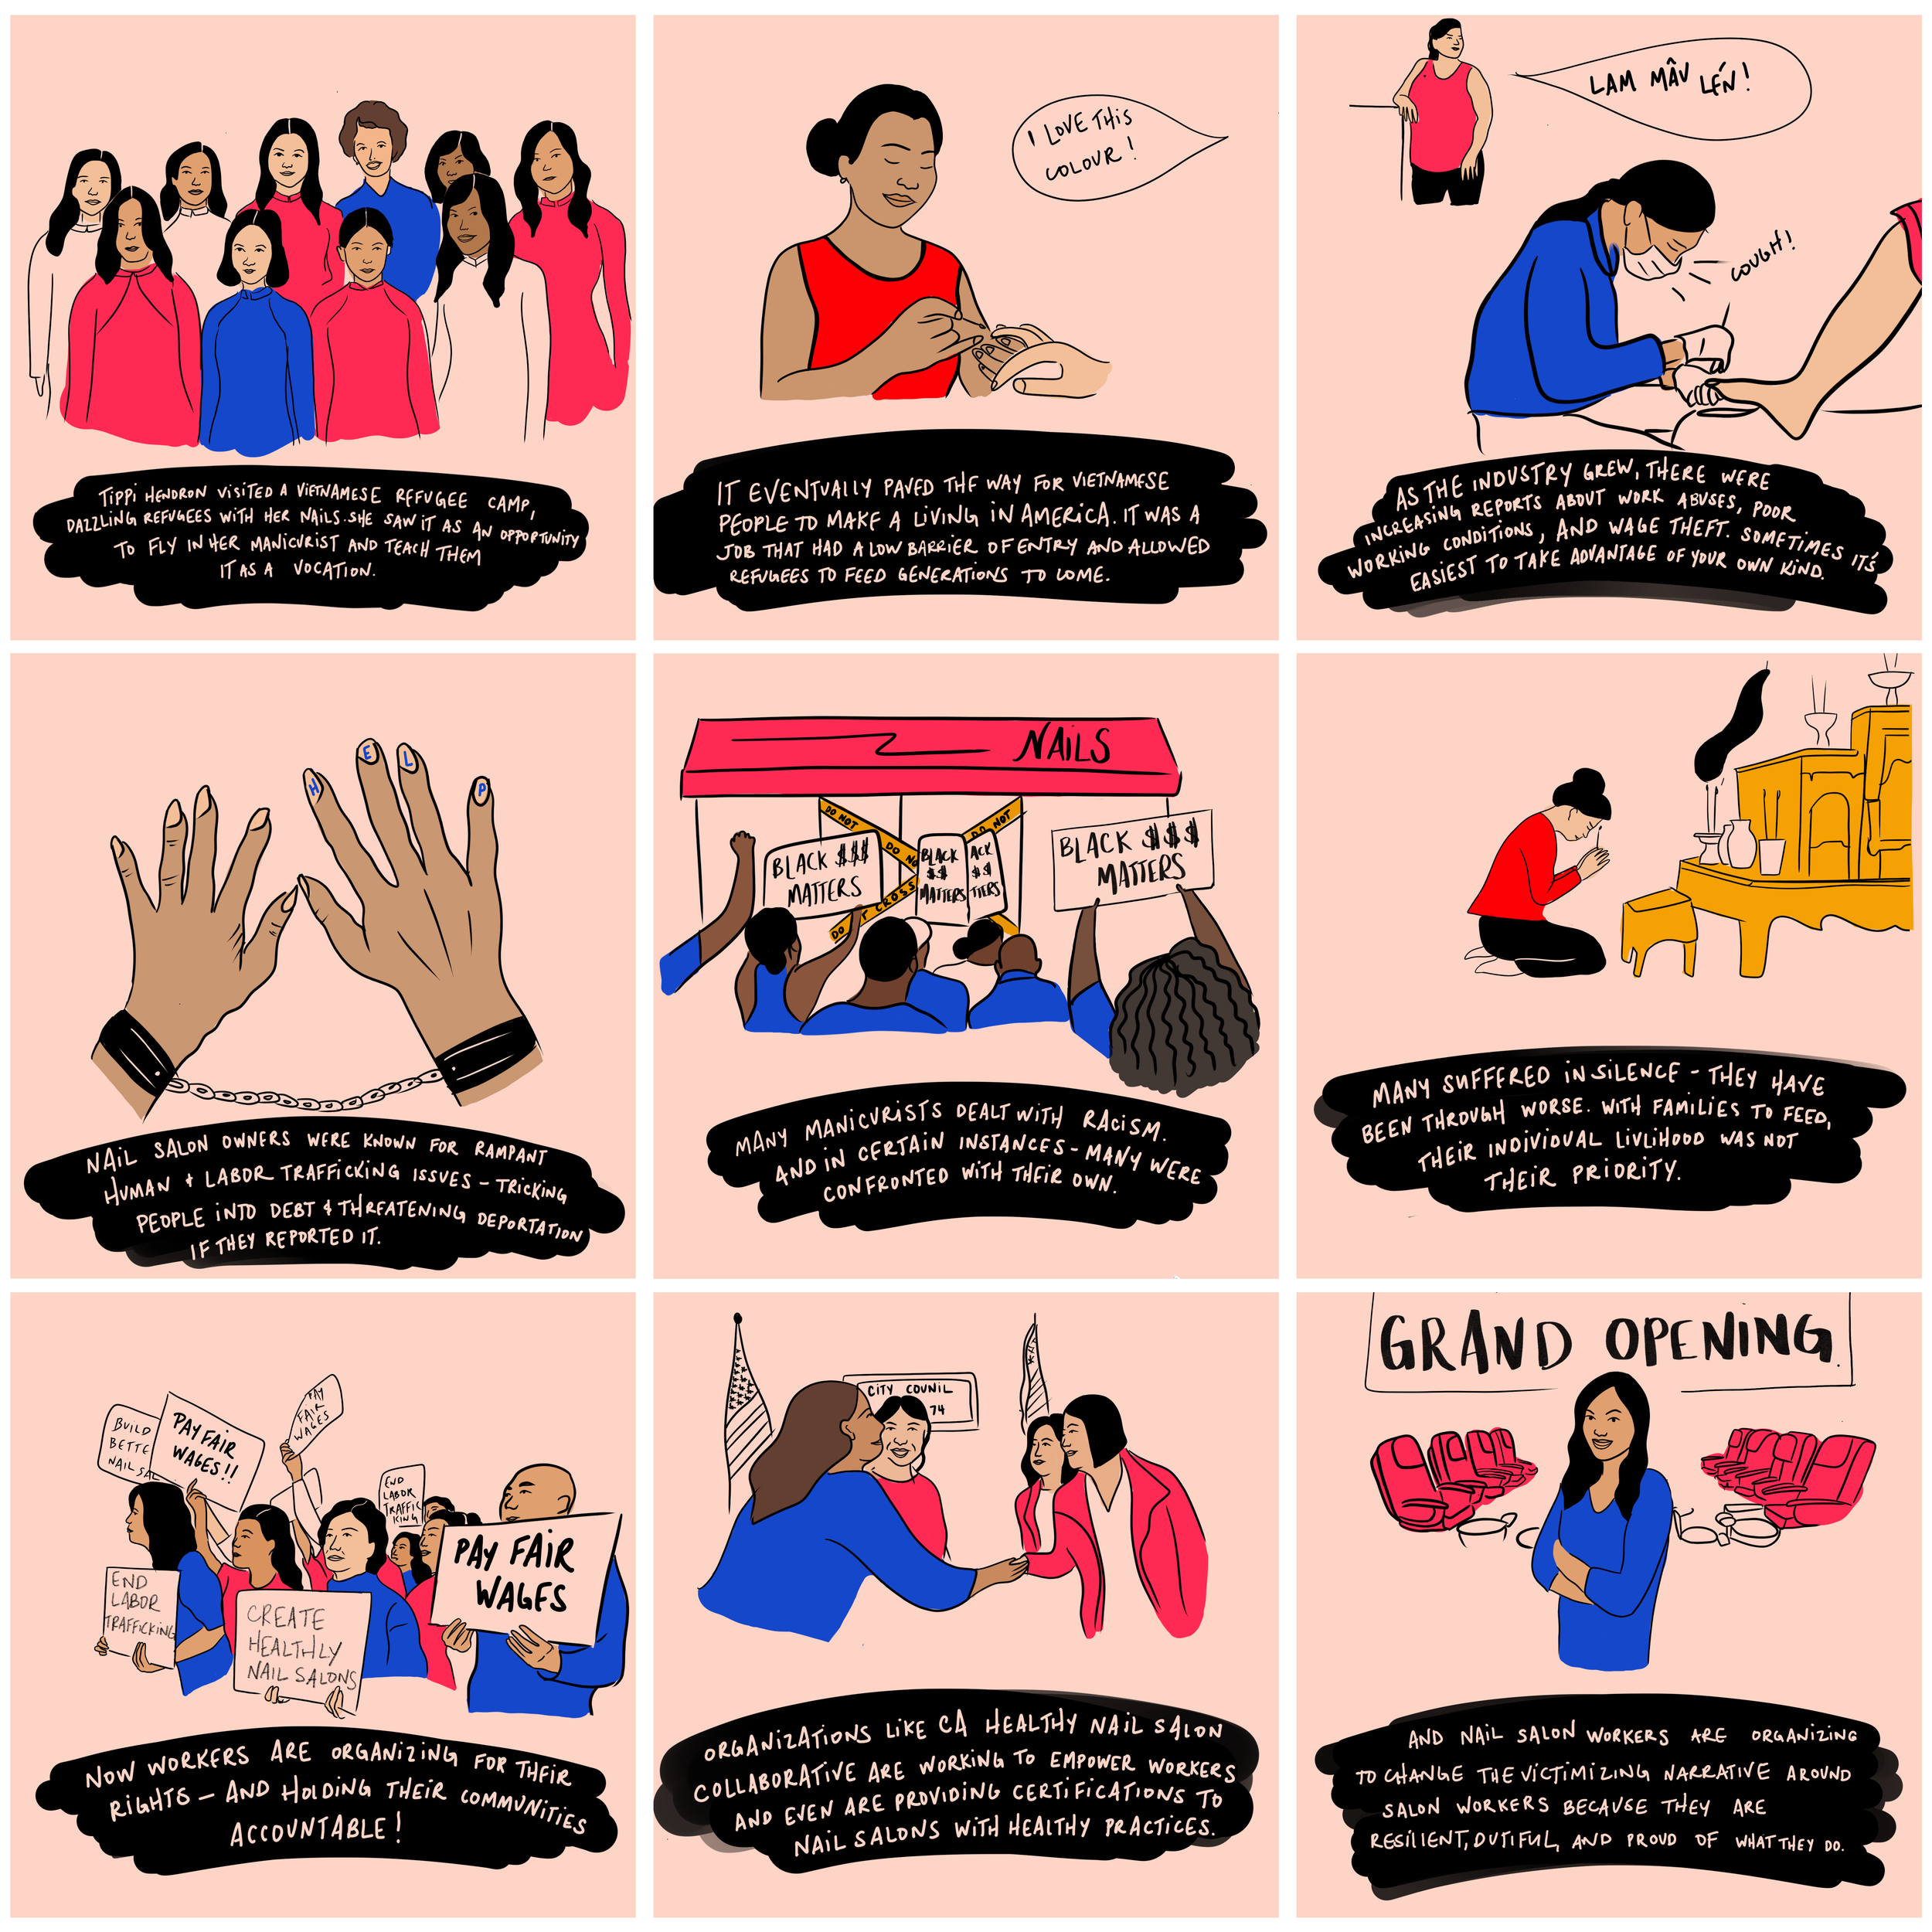 - The winner of our art contest is Natalie Bui.Vietnamese Americans in the nail salon industry' I hope that this illustration series captures the plight of the nail salon industry. I wanted to highlight the sacrifices they go through, the issues they face, their unwavering resiliency, and their strong pride without victimizing them further like how mainstream media does. I also indicate how sometimes it's easy to take advantage of the communities you know best so that means we must call it out for what it is and hold them accountable.